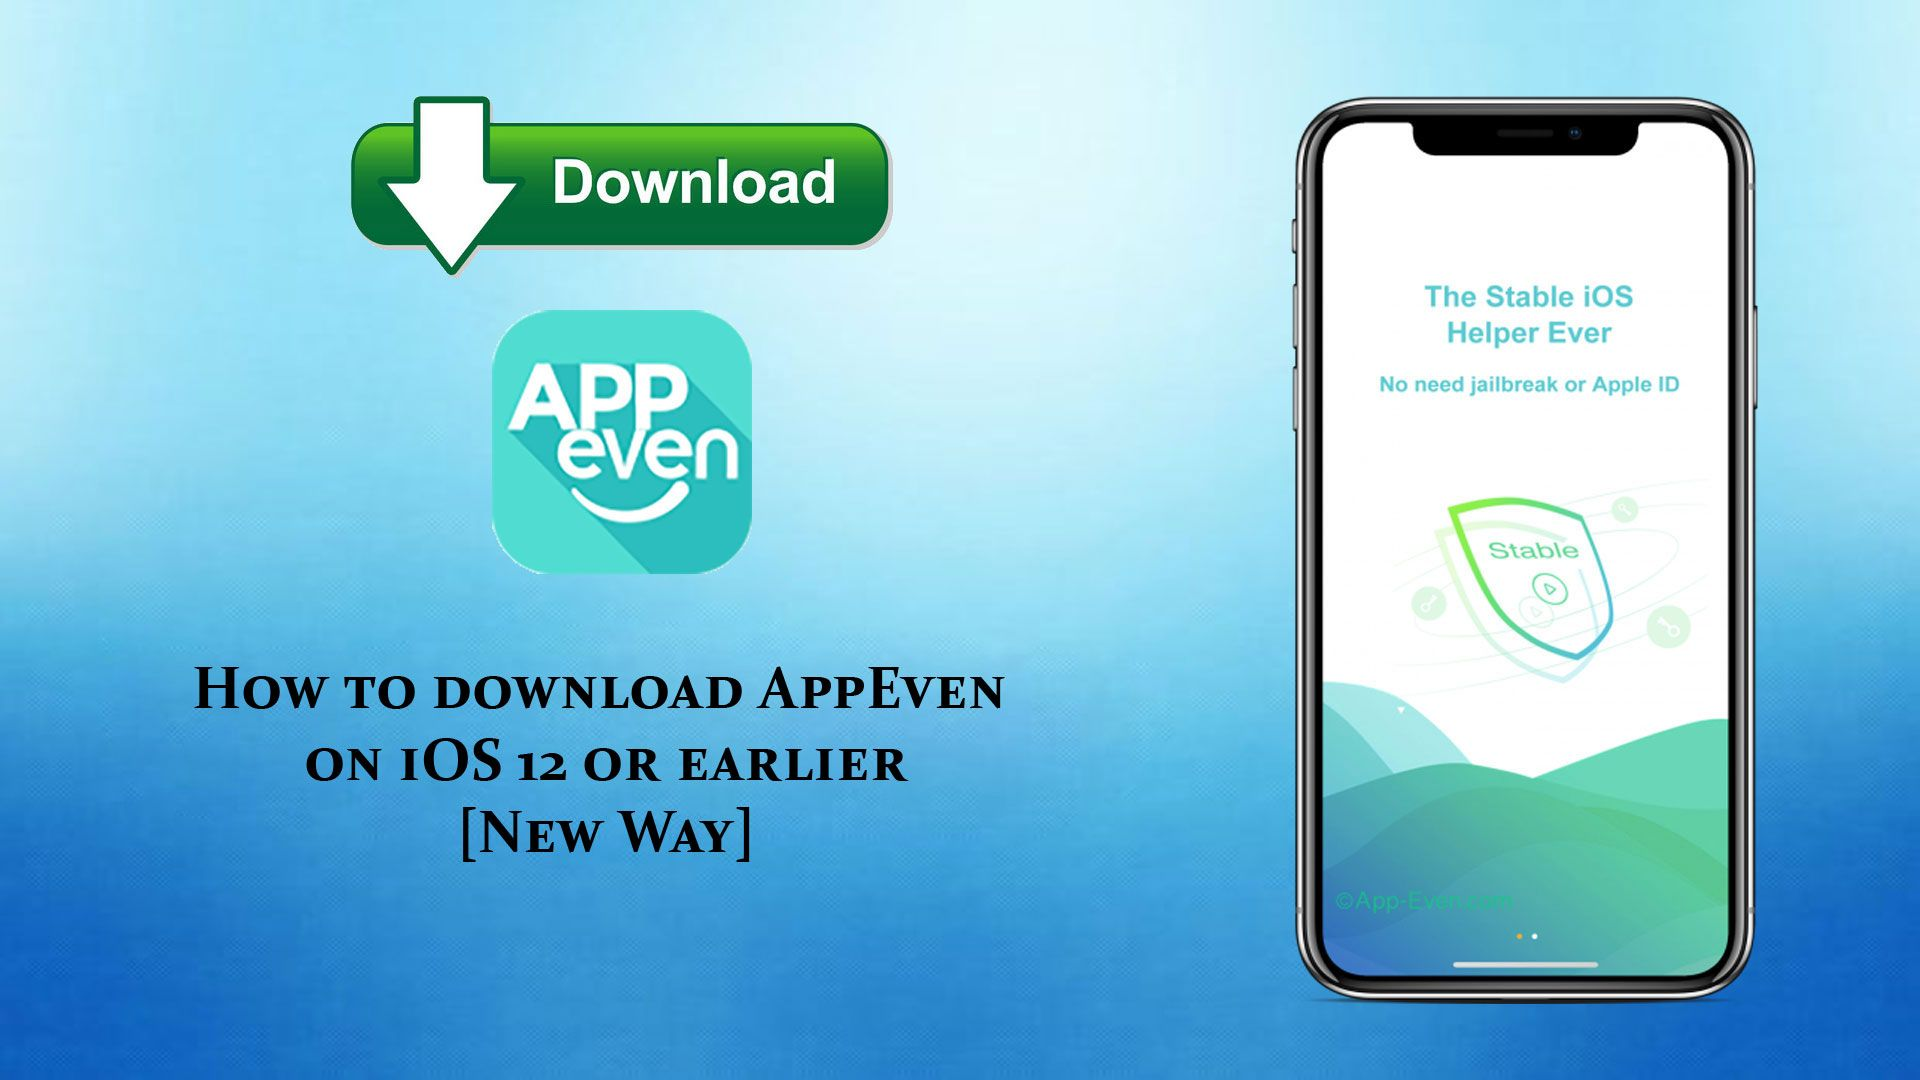 New Way! How to download AppEven on iOS 12 without